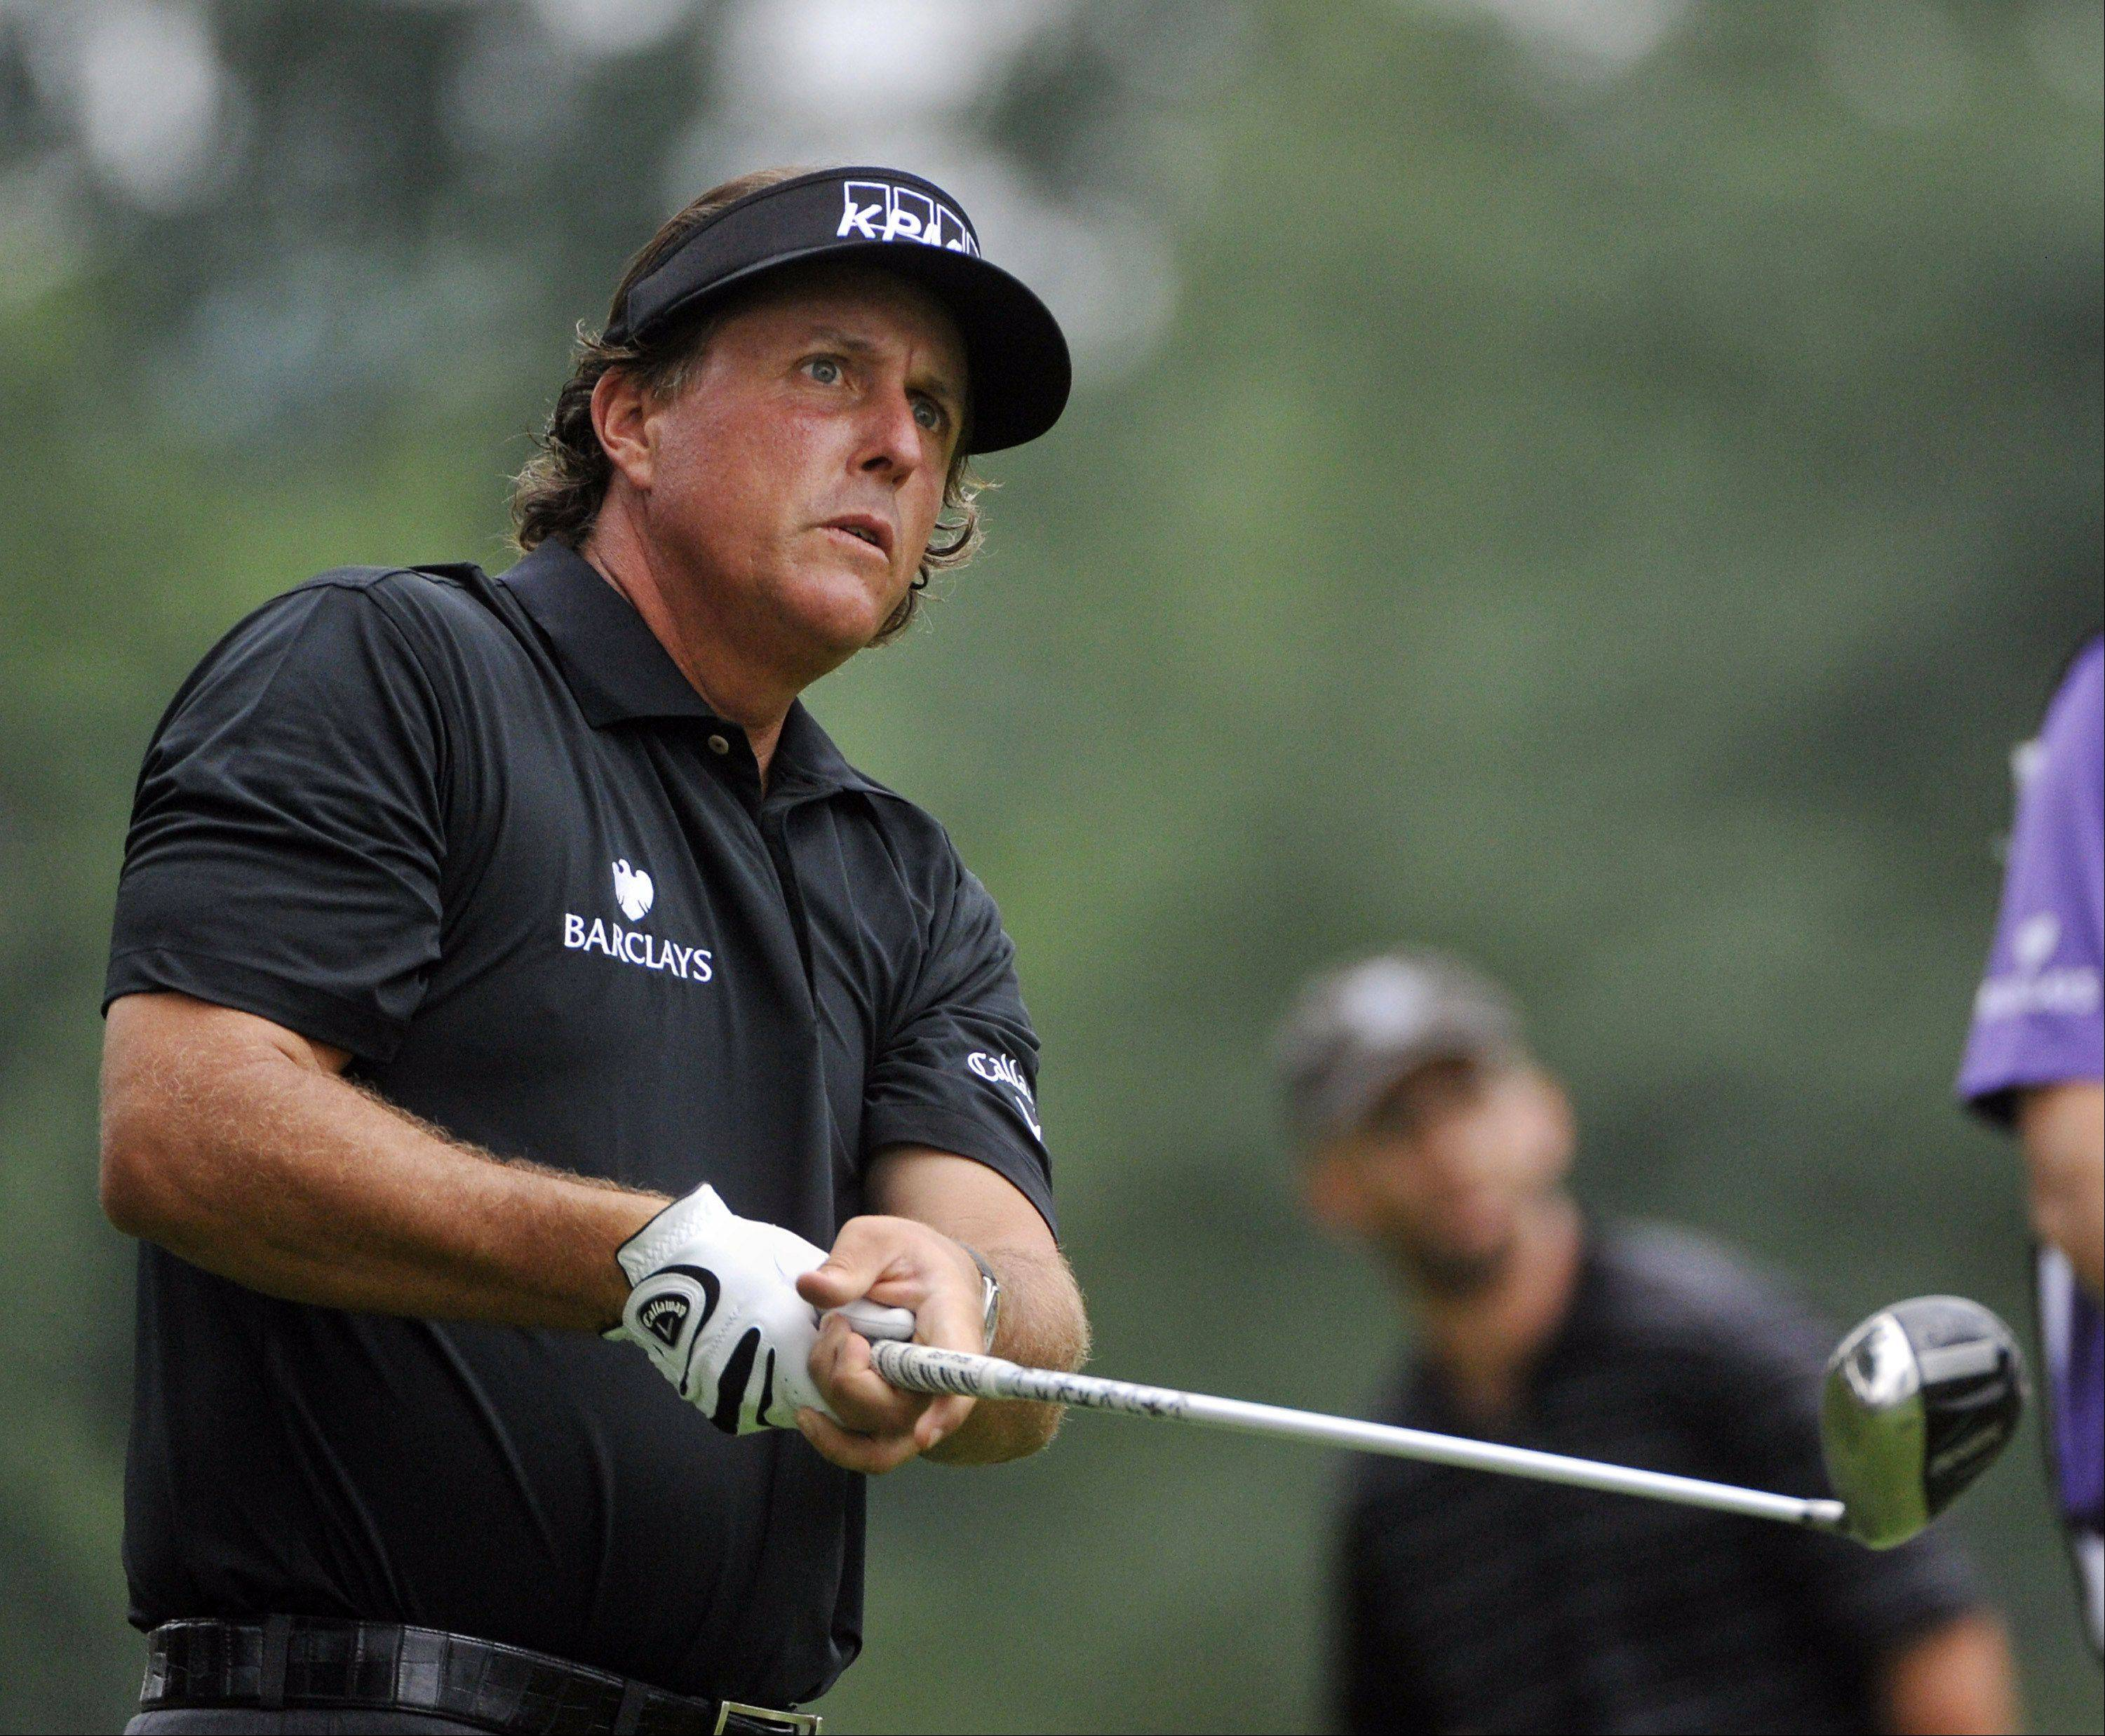 Phil Mickelson watches his tee shot on the 11th hole during the final round of the Bridgestone Invitational golf tournament at Firestone Country Club in Akron, Ohio, Sunday, Aug. 5, 2012.